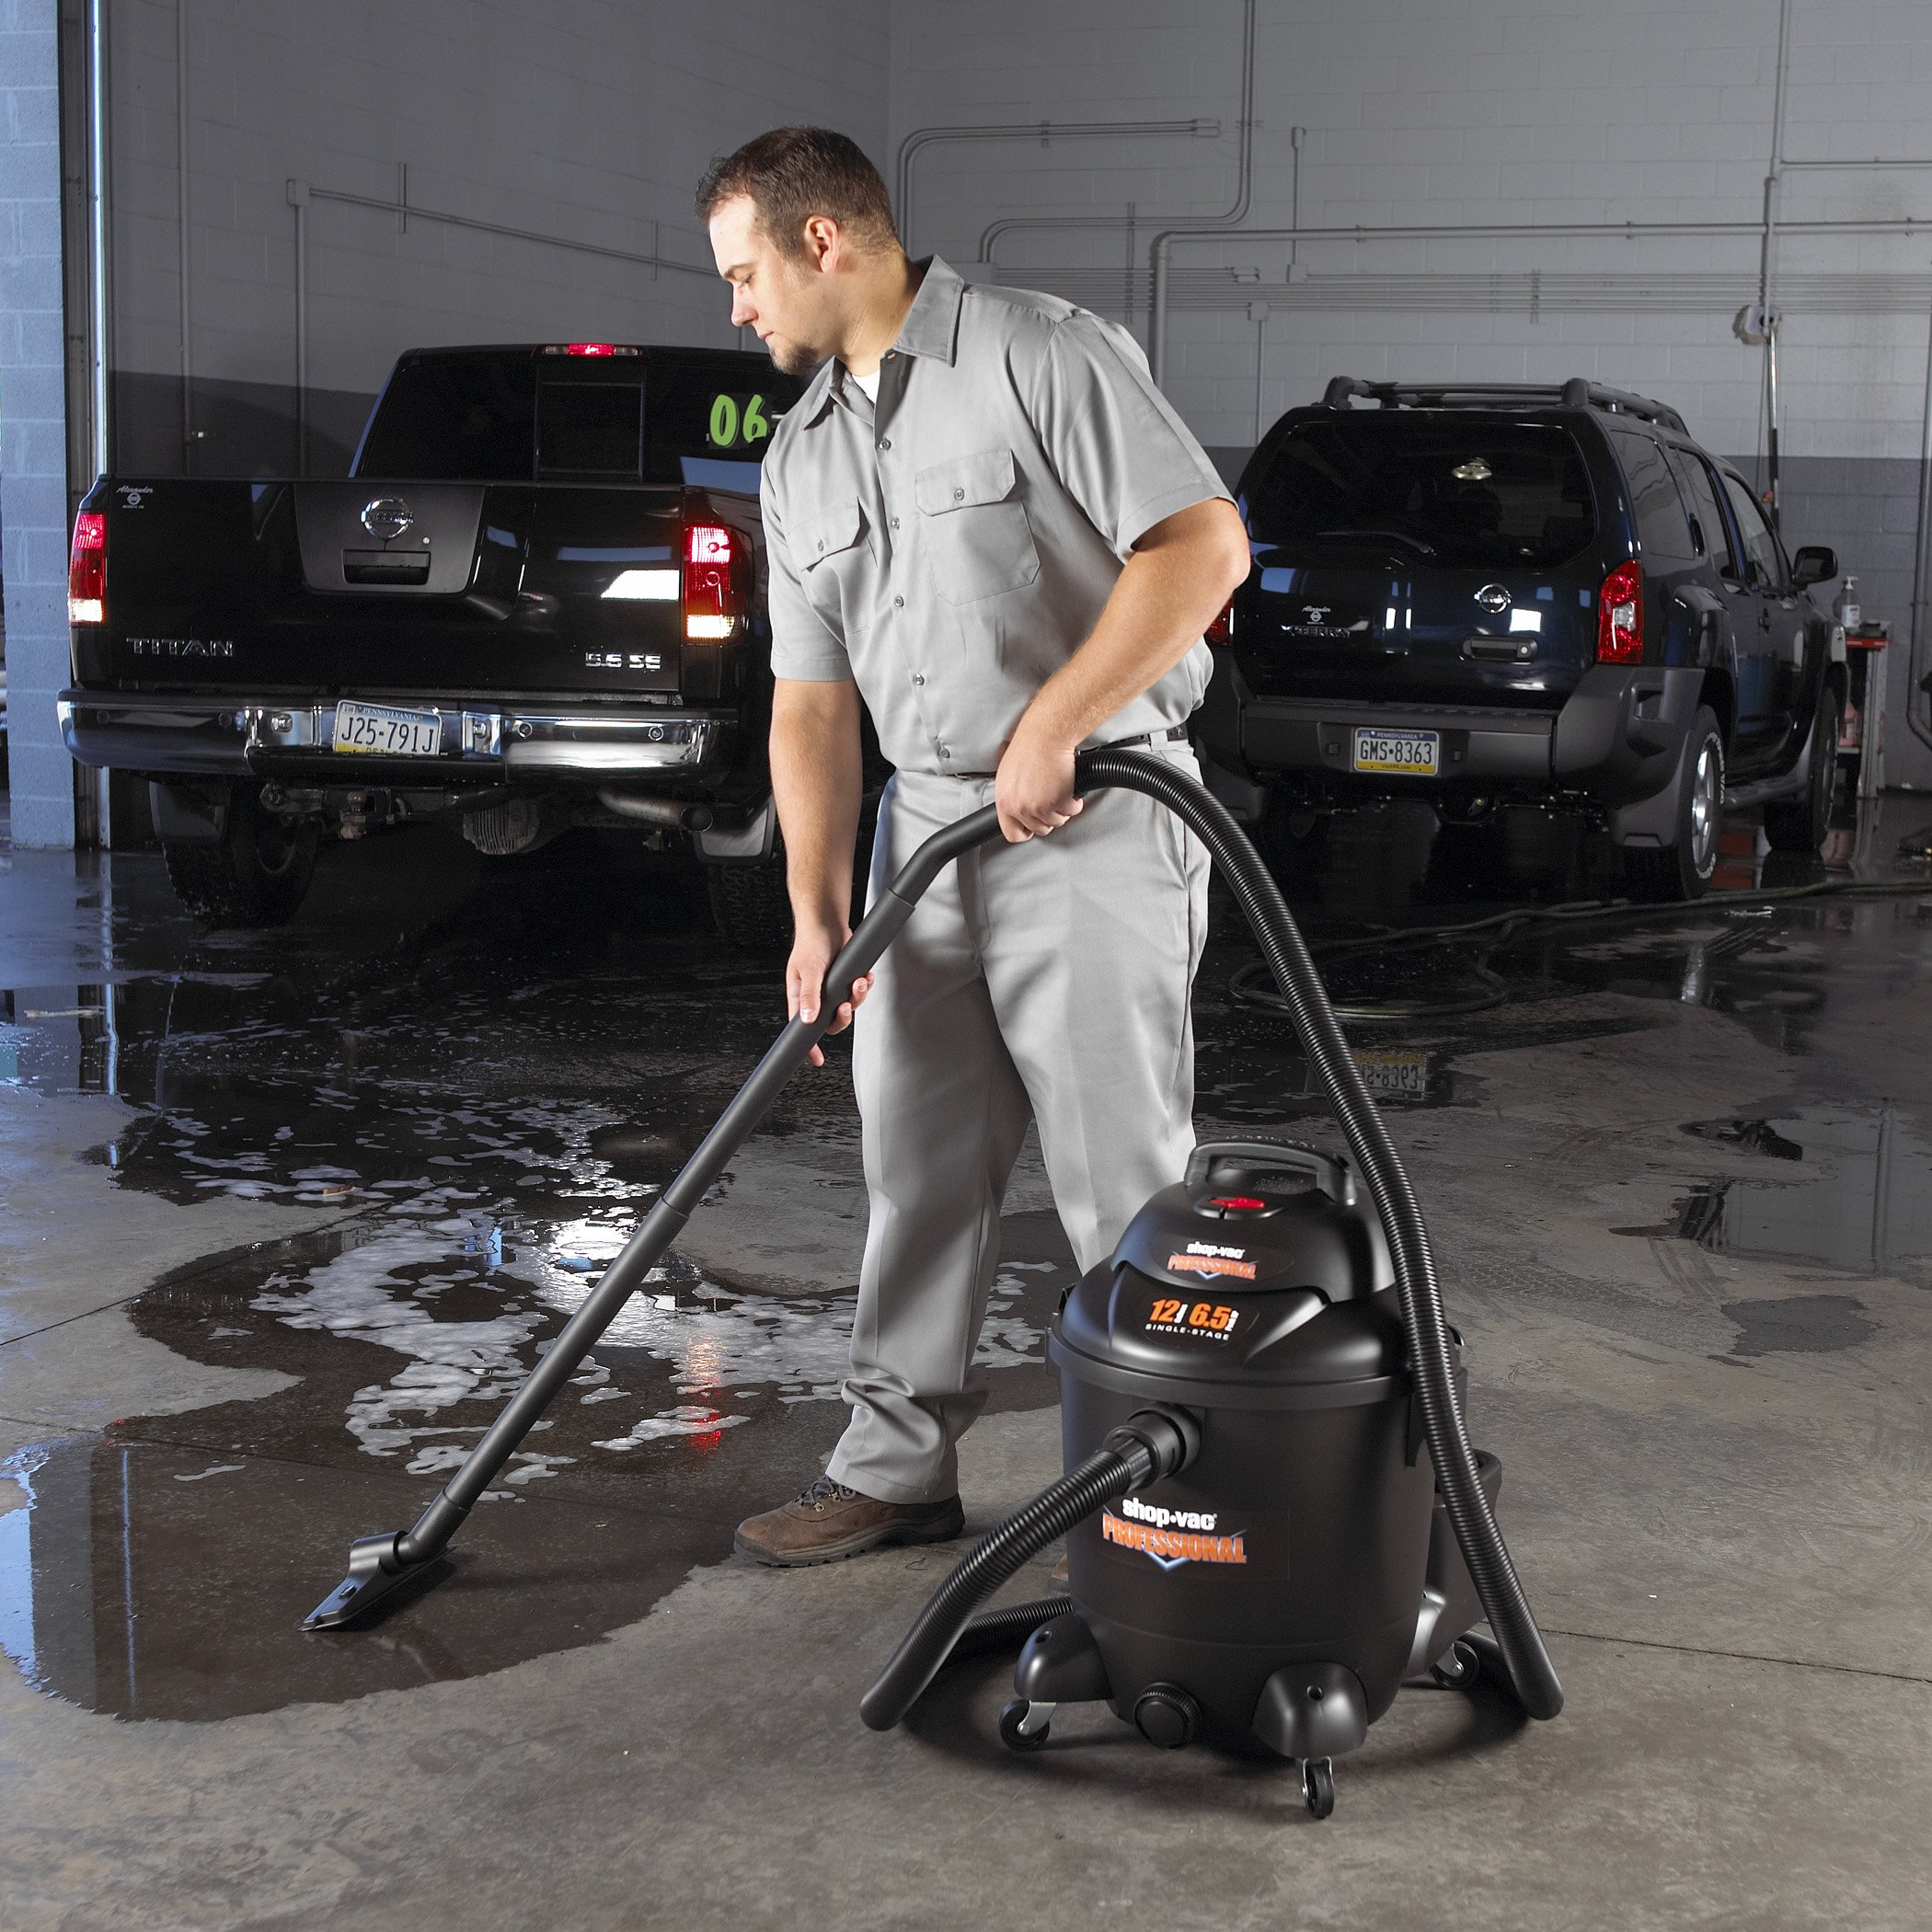 Shop-Vac 9621210 Professional Commercial Duty Vacuum - 12 Gallon Capacity by Shop-Vac (Image #8)